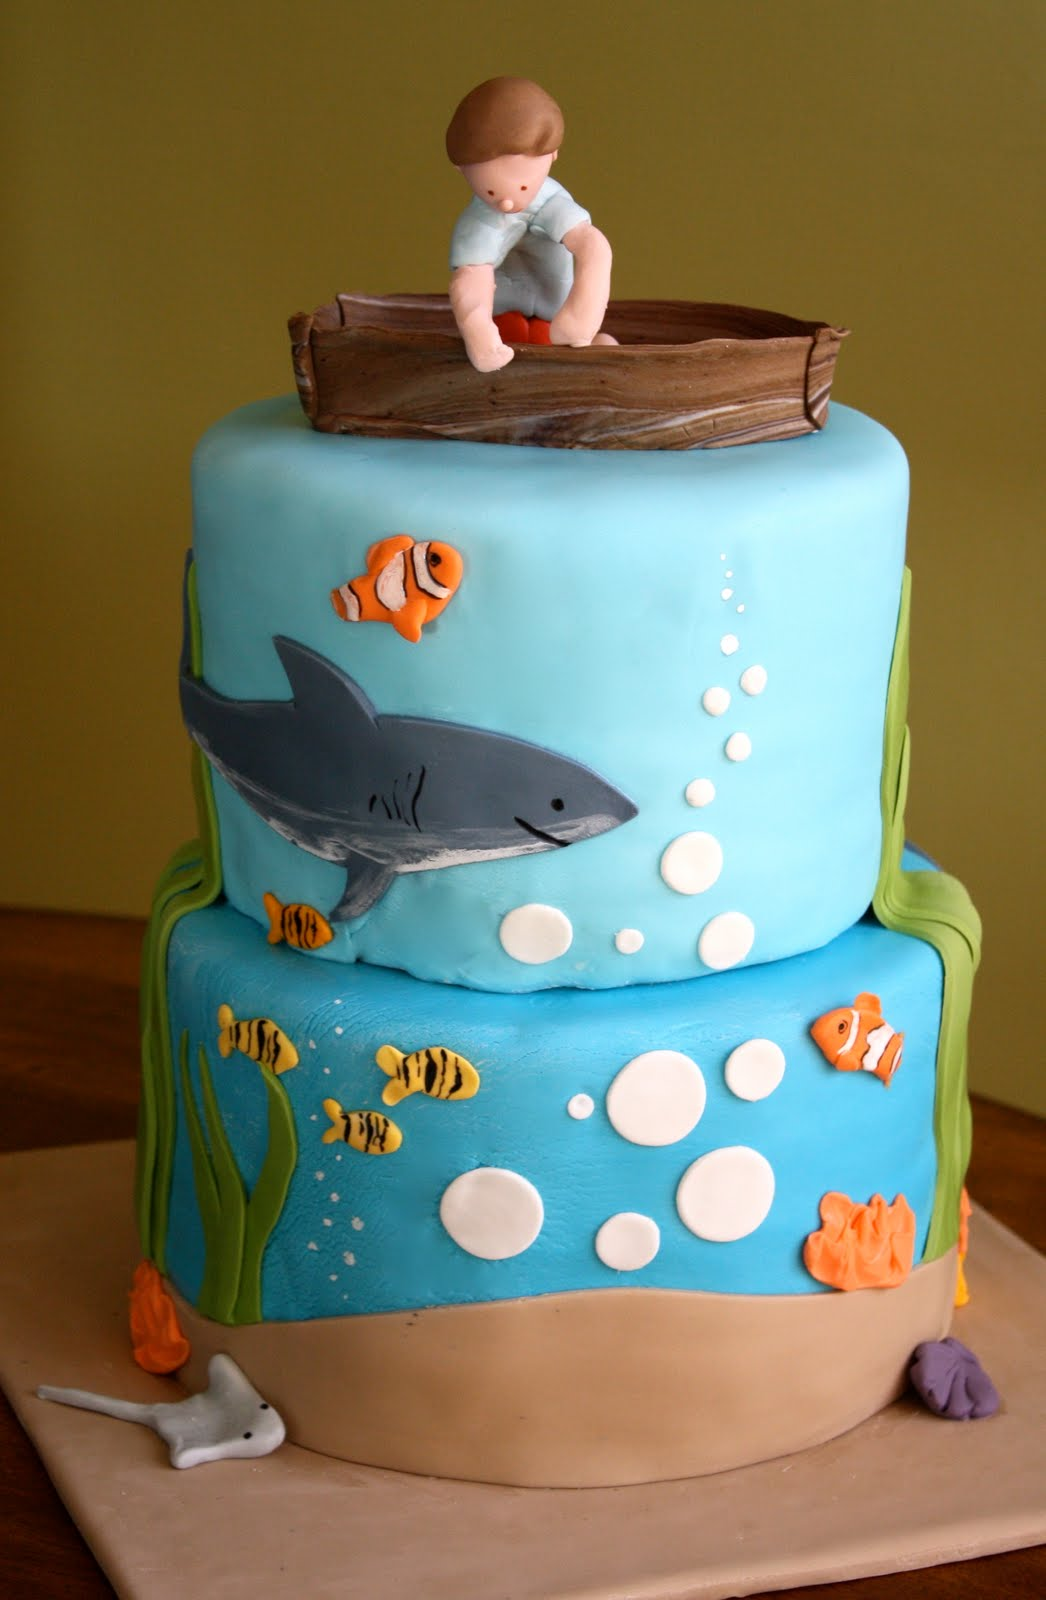 Birthday Cake Images For Little Boy : Food Recipes: Under the Sea Birthday Cake!